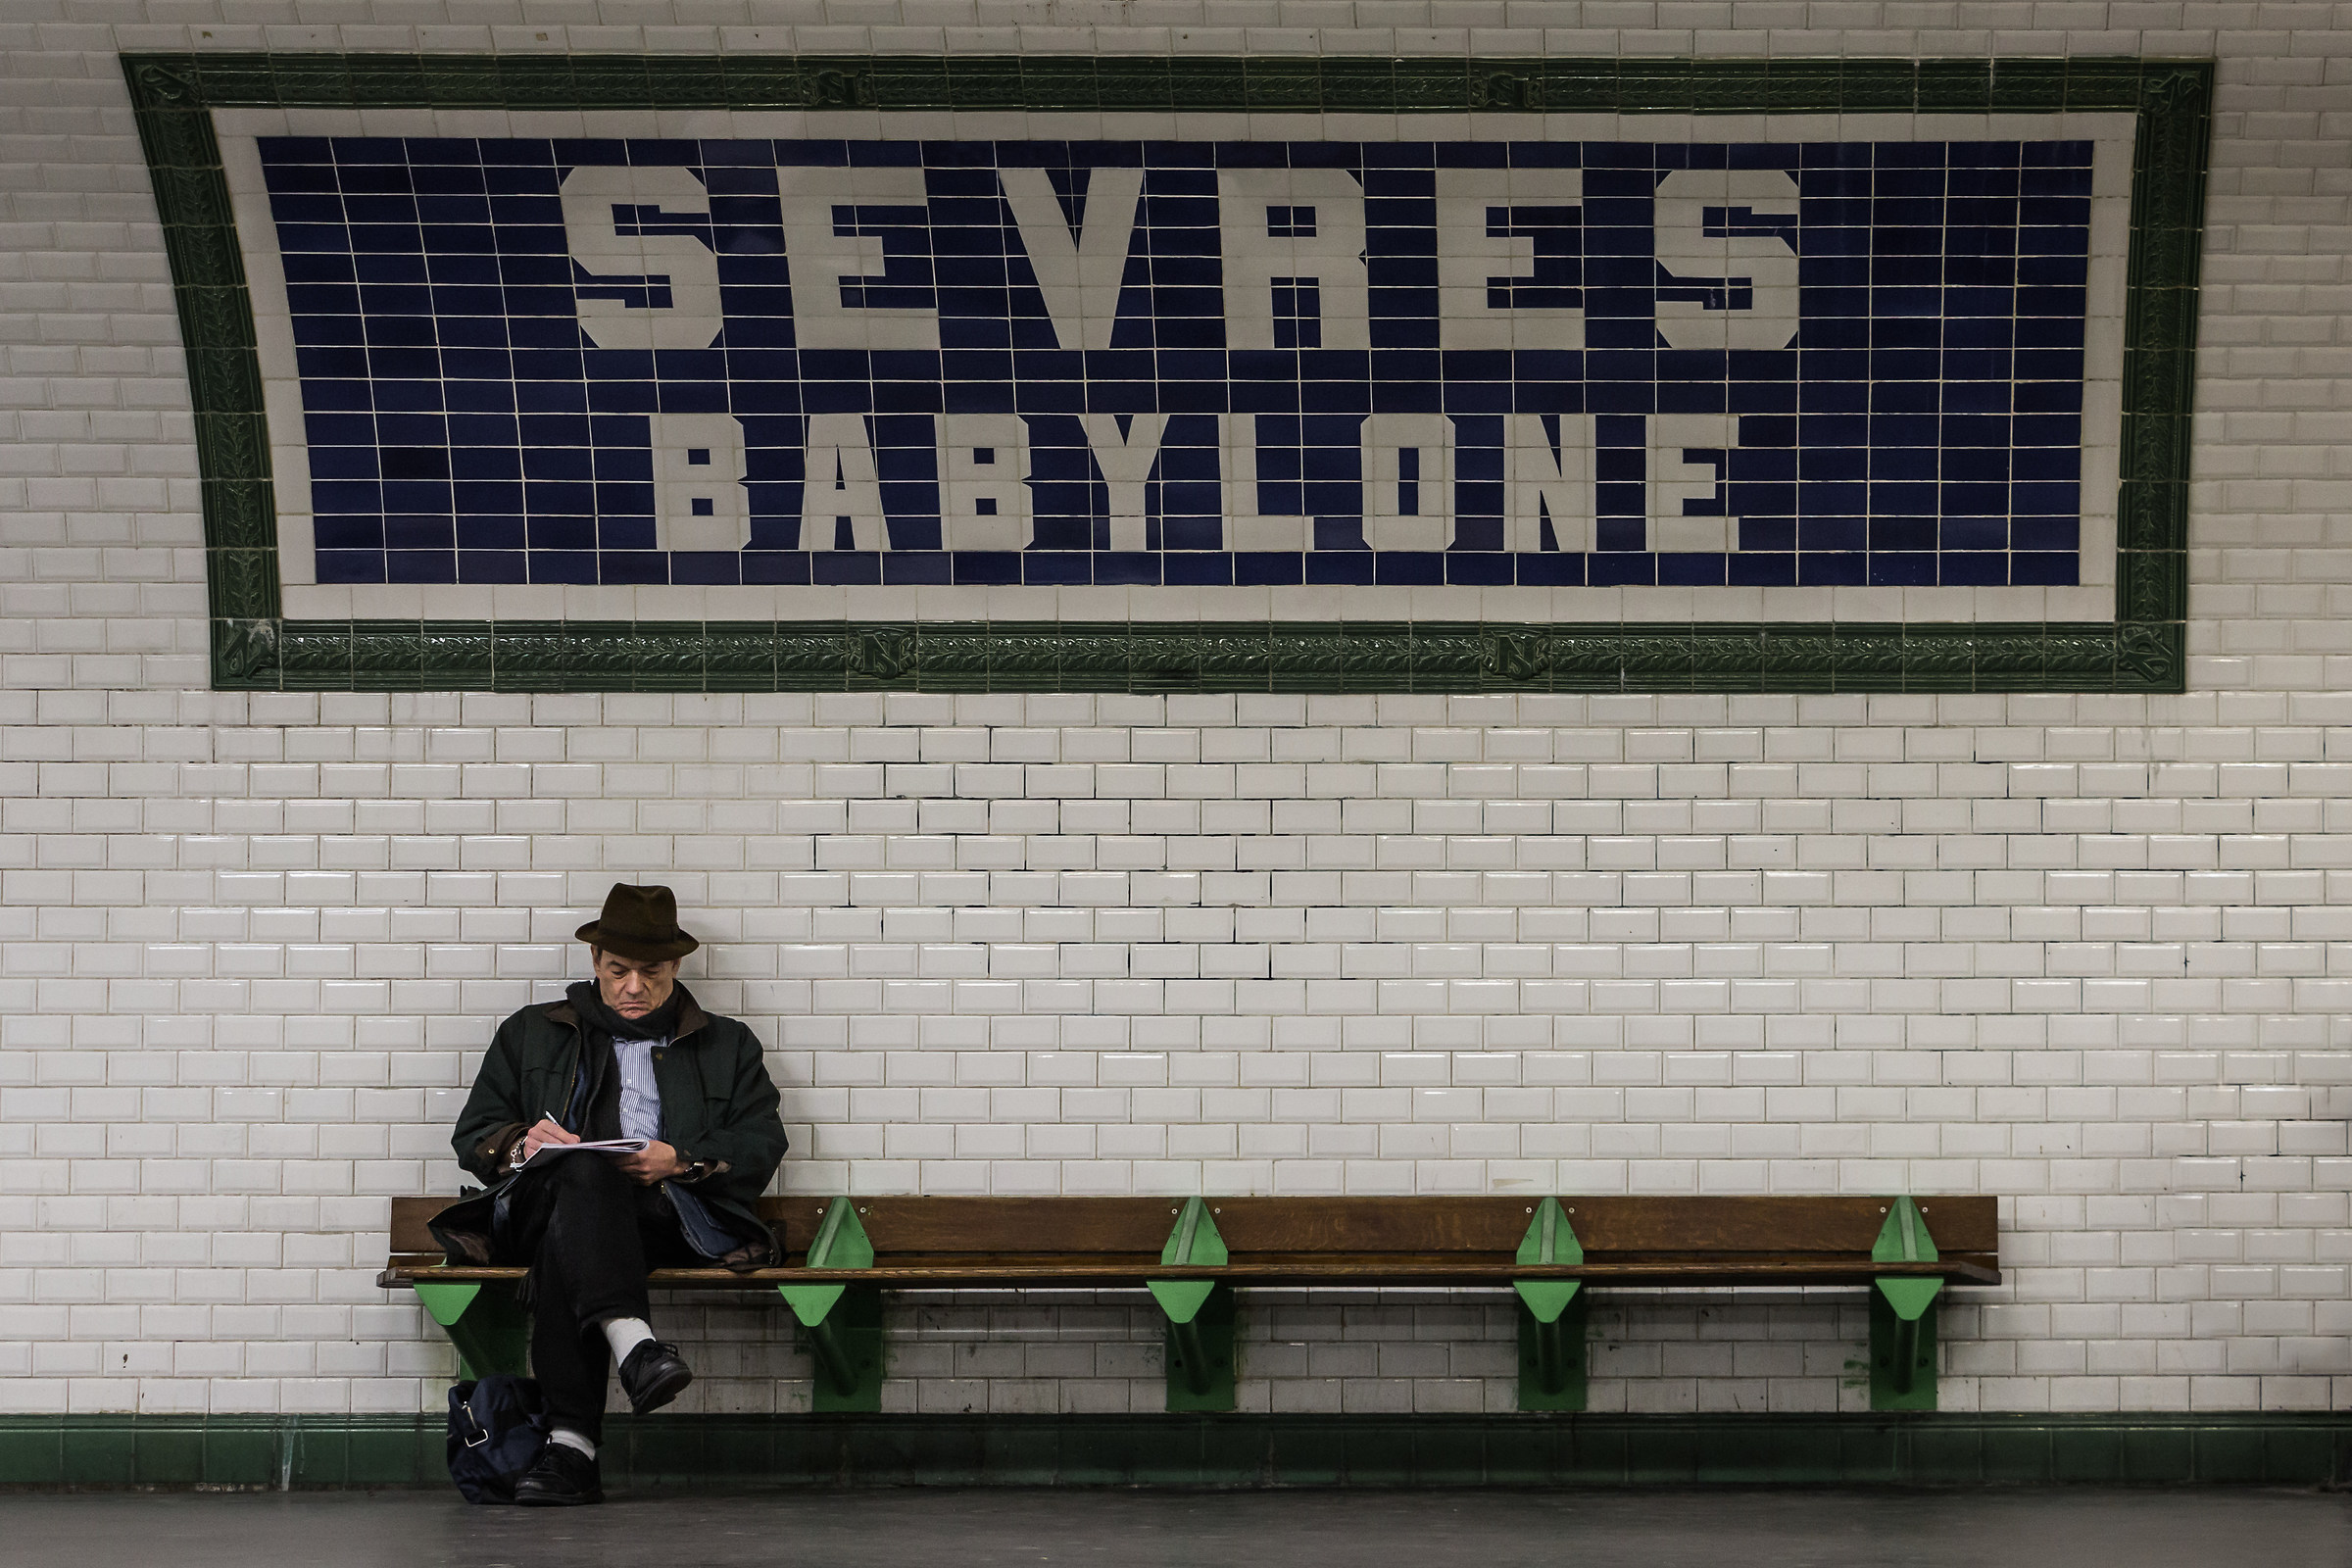 A rare moment of calm in the subway...